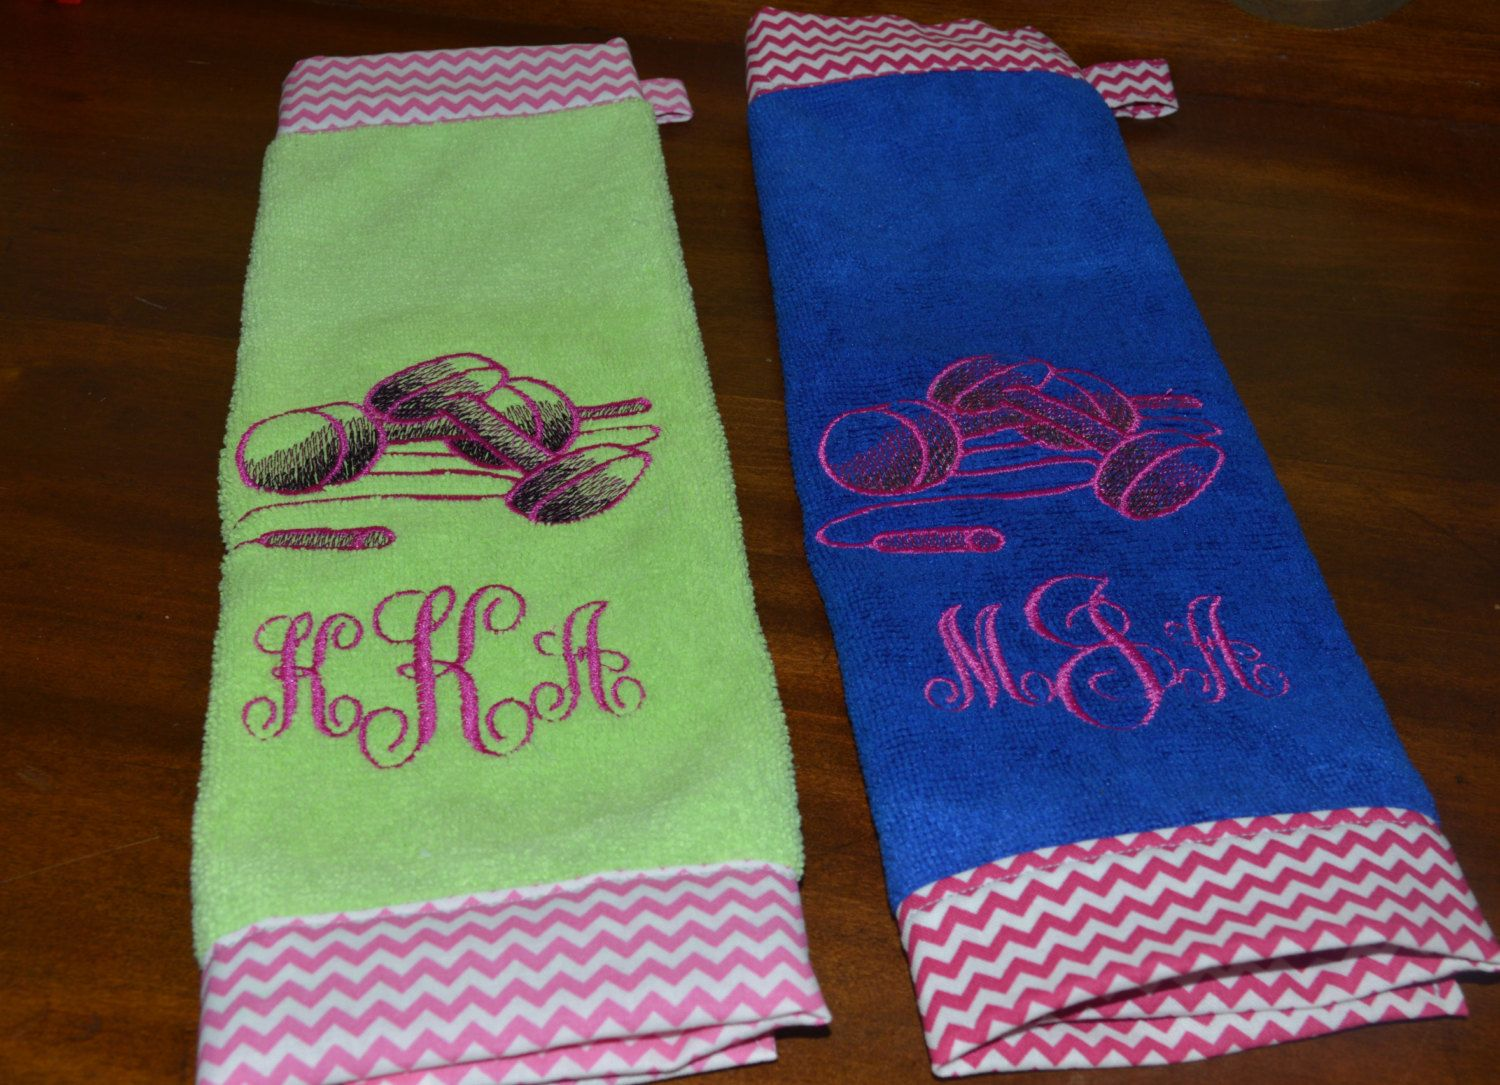 OM Yoga Sport Towels/ Embroidered Gym Towel/ Personalized Towels/Travel  towel/ Fitness